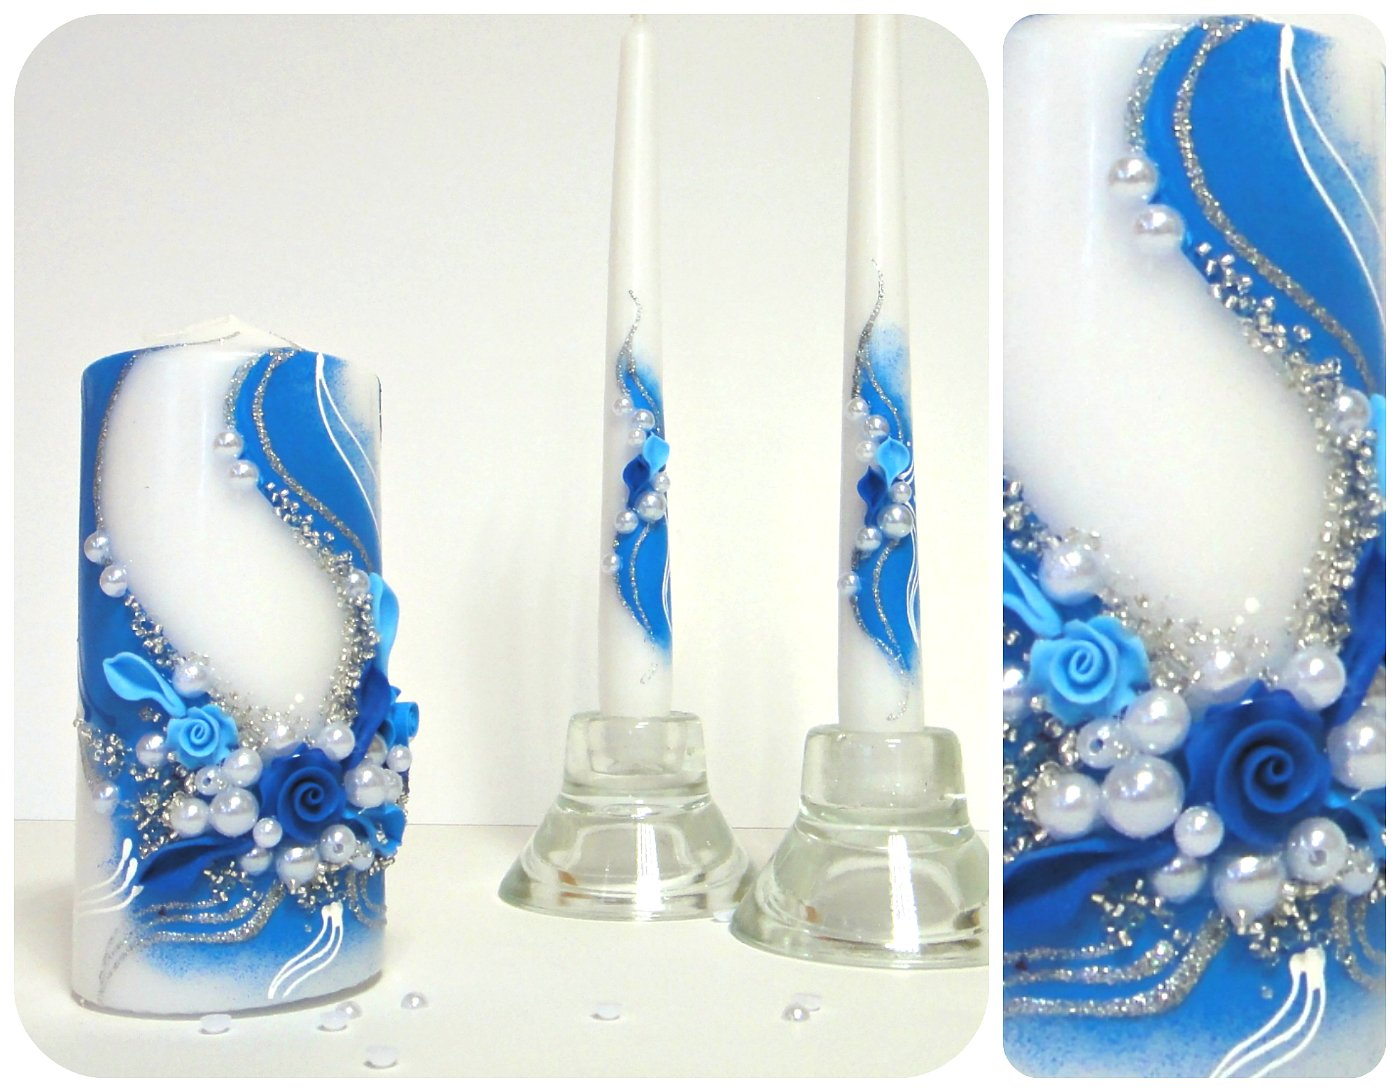 Magik Life Unity Candle Set for Wedding - Wedding décor & Wedding Accessories - Candle Sets - Birthday |Wedding Settings |Ceremony Ideas Party (Blue with Wave) by Magik Life